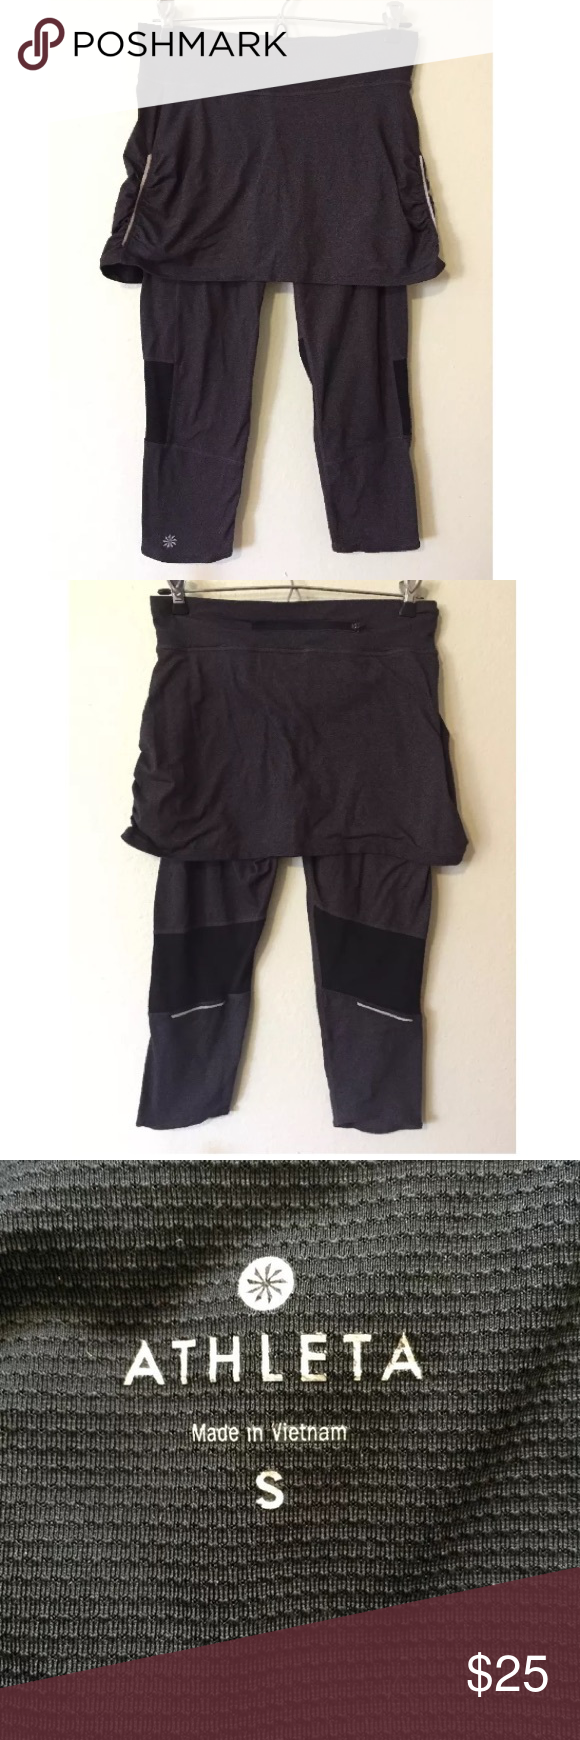 Athleta Contender leggings & skirt combo SMALL Contender capri attached athletic skirt/legging combo in a dark grey and black from Athleta. Size small. Gently worn with some signs of normal wear. Wear to the elastic on the sides of the skirt. See pictures, please. Athleta Pants Capris